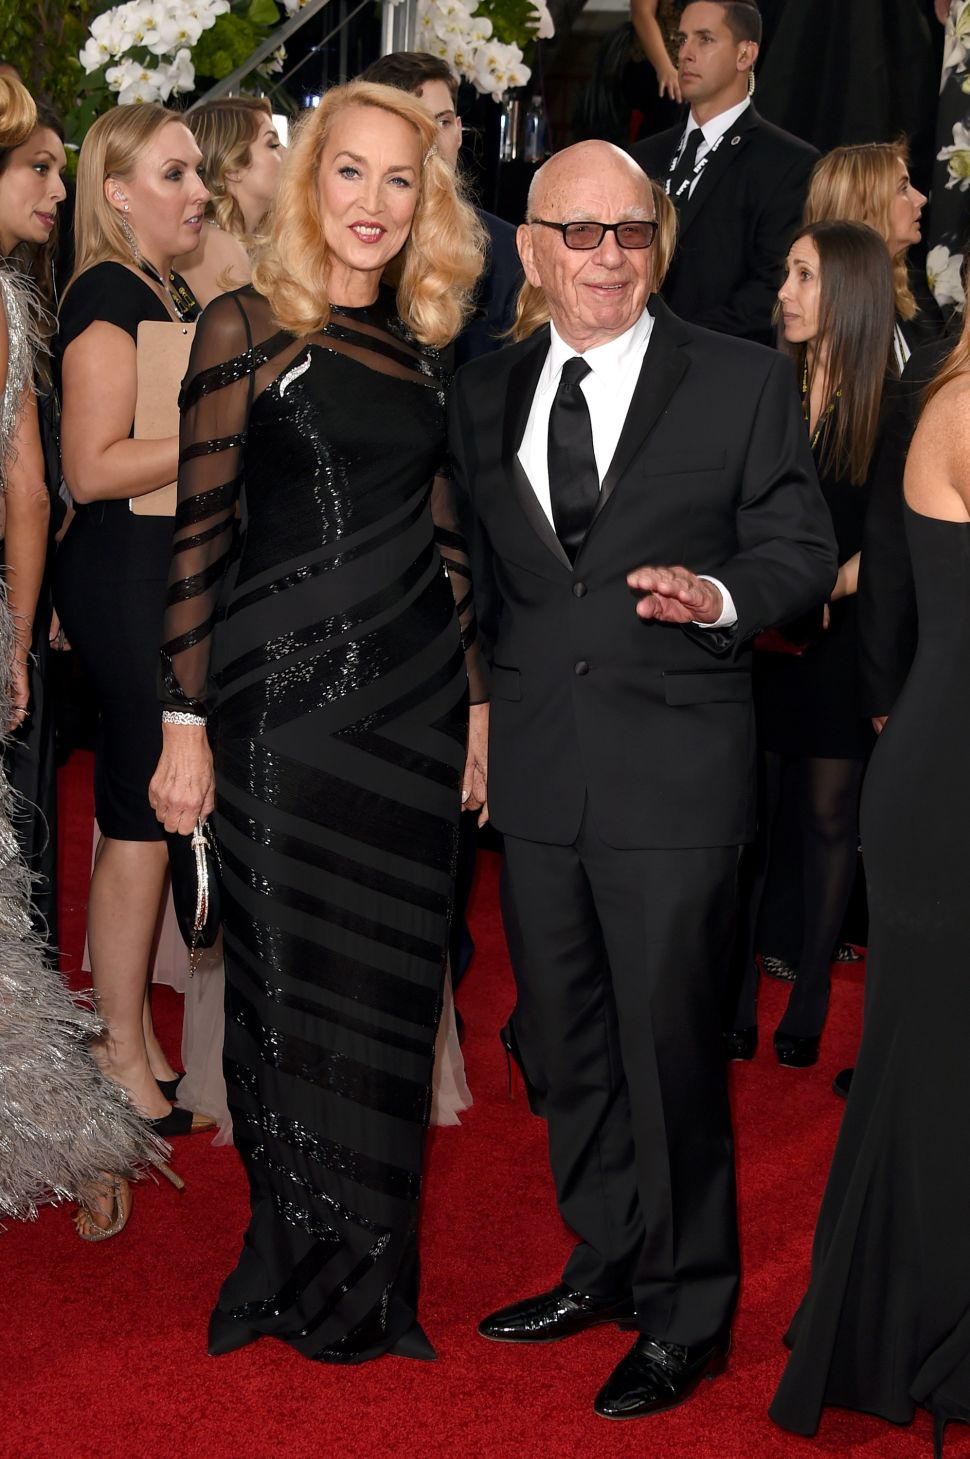 Rupert Murdoch and Jerry Hall Are Engaged